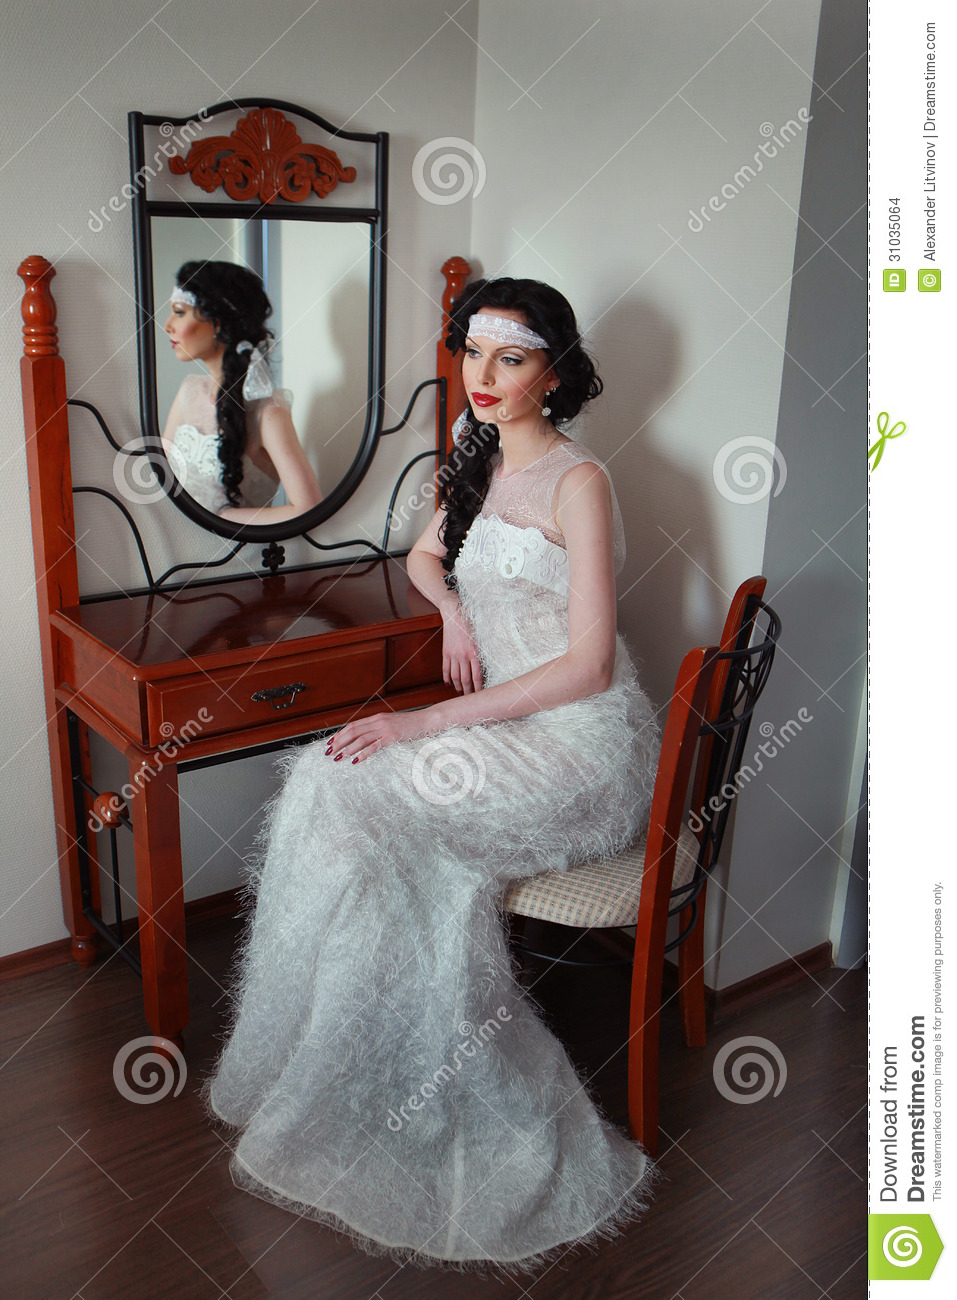 Smart girl at the mirror stock photo. Image of omission ...